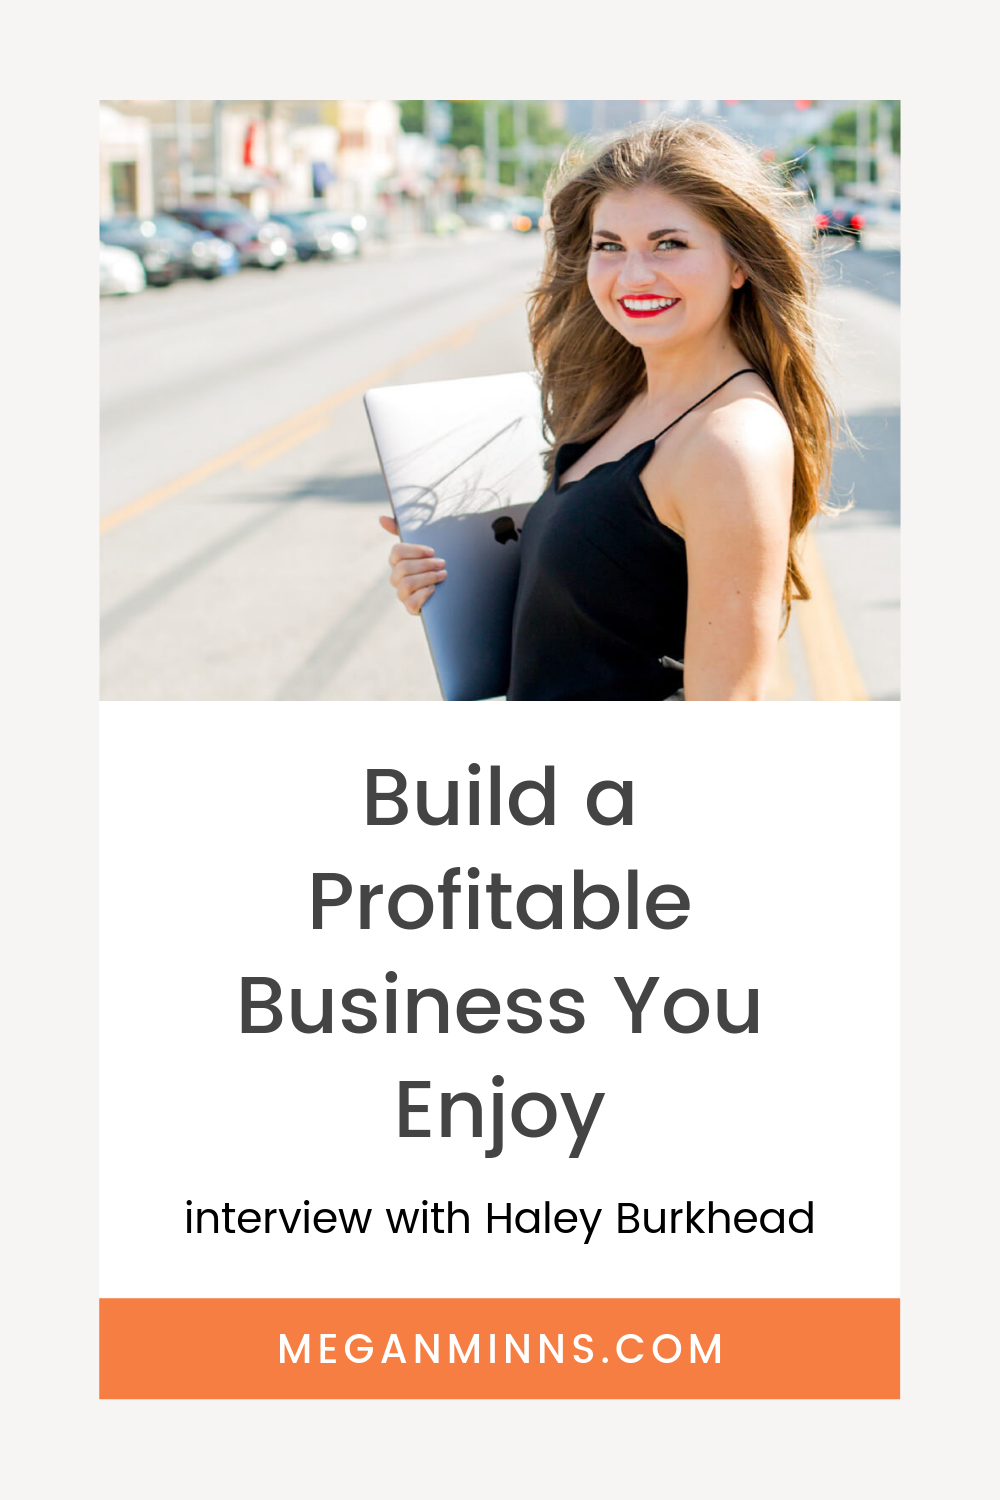 I'm talking with Haley Burkhead of Profit Planner all about how she has created a business that is both profitable (she shares her income report every month - they're amazing!) but also truly enjoyable for her. If your goal is to create a lifestyle you love that is support by your business, this interview is not one to miss!  FULL INTERVIEW HERE >> meganminns.com/blog/haley-burkhead